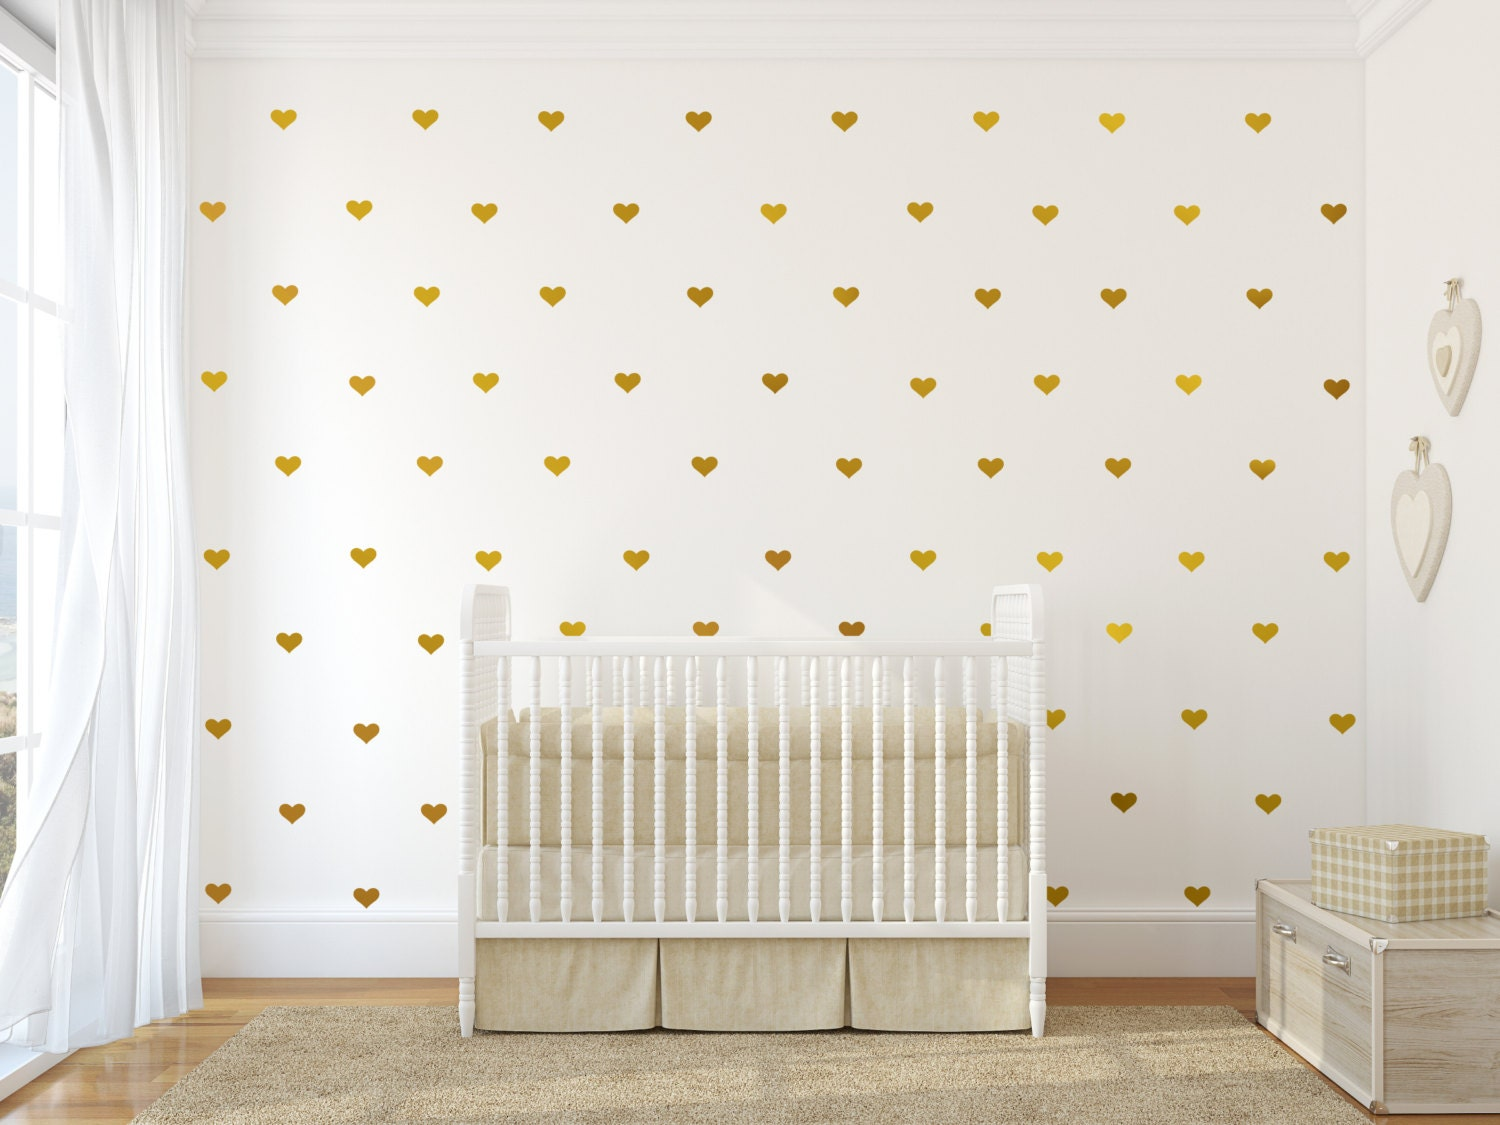 Wall decal wall sticker nursery art gold wall decals wall description gold vinyl heart decals amipublicfo Gallery